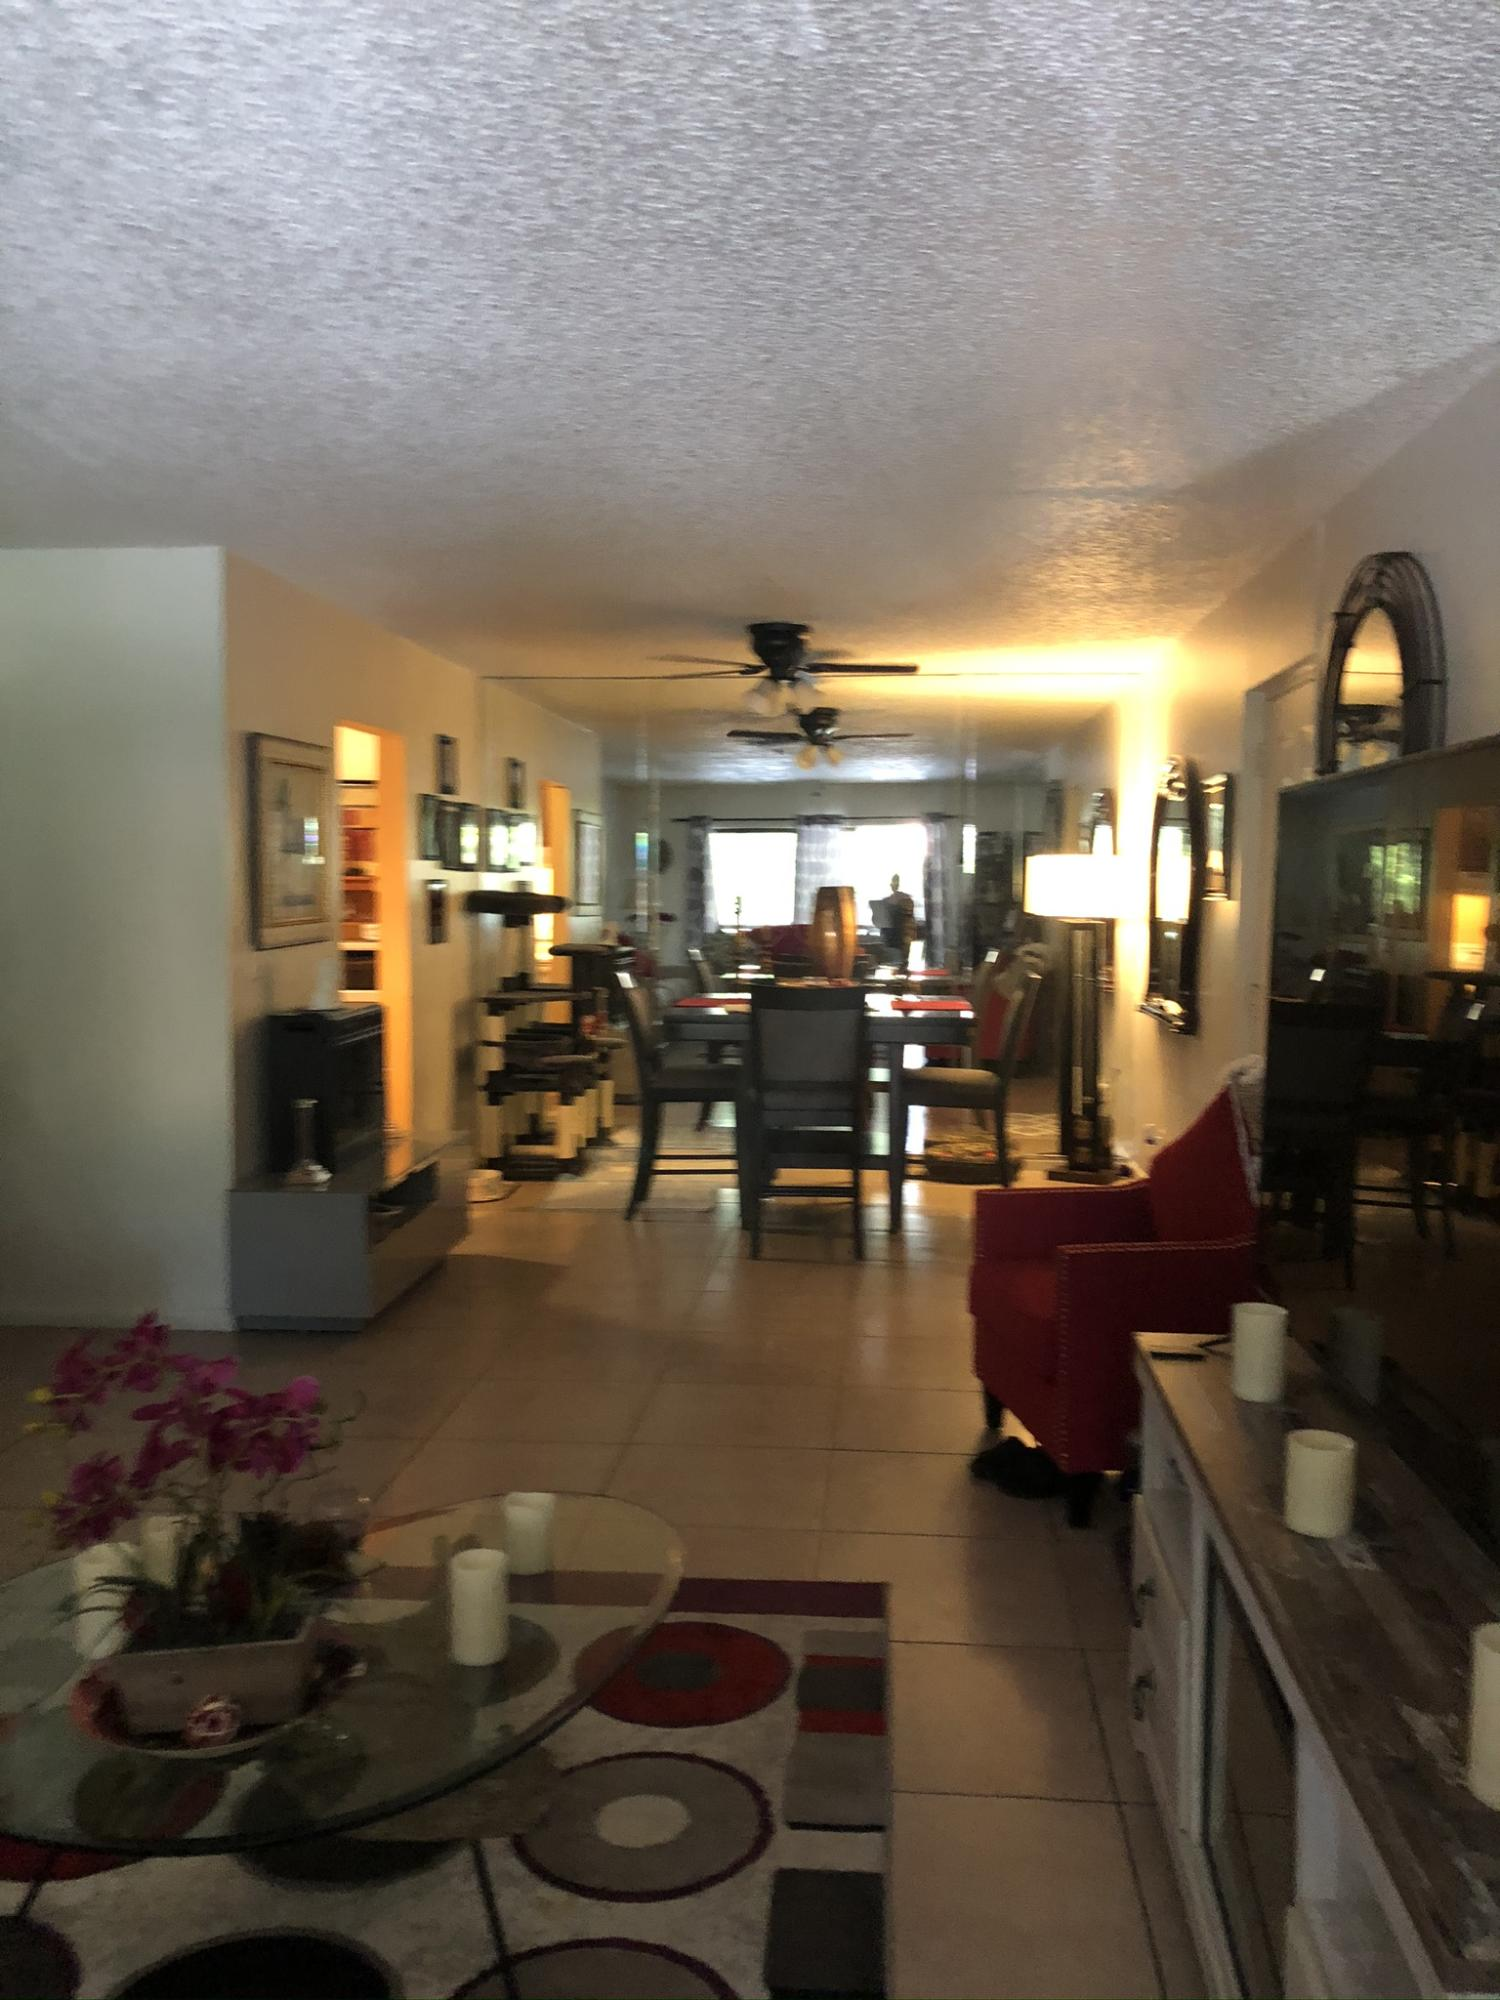 9875 Pineapple Tree Drive #210 - 33436 - FL - Boynton Beach